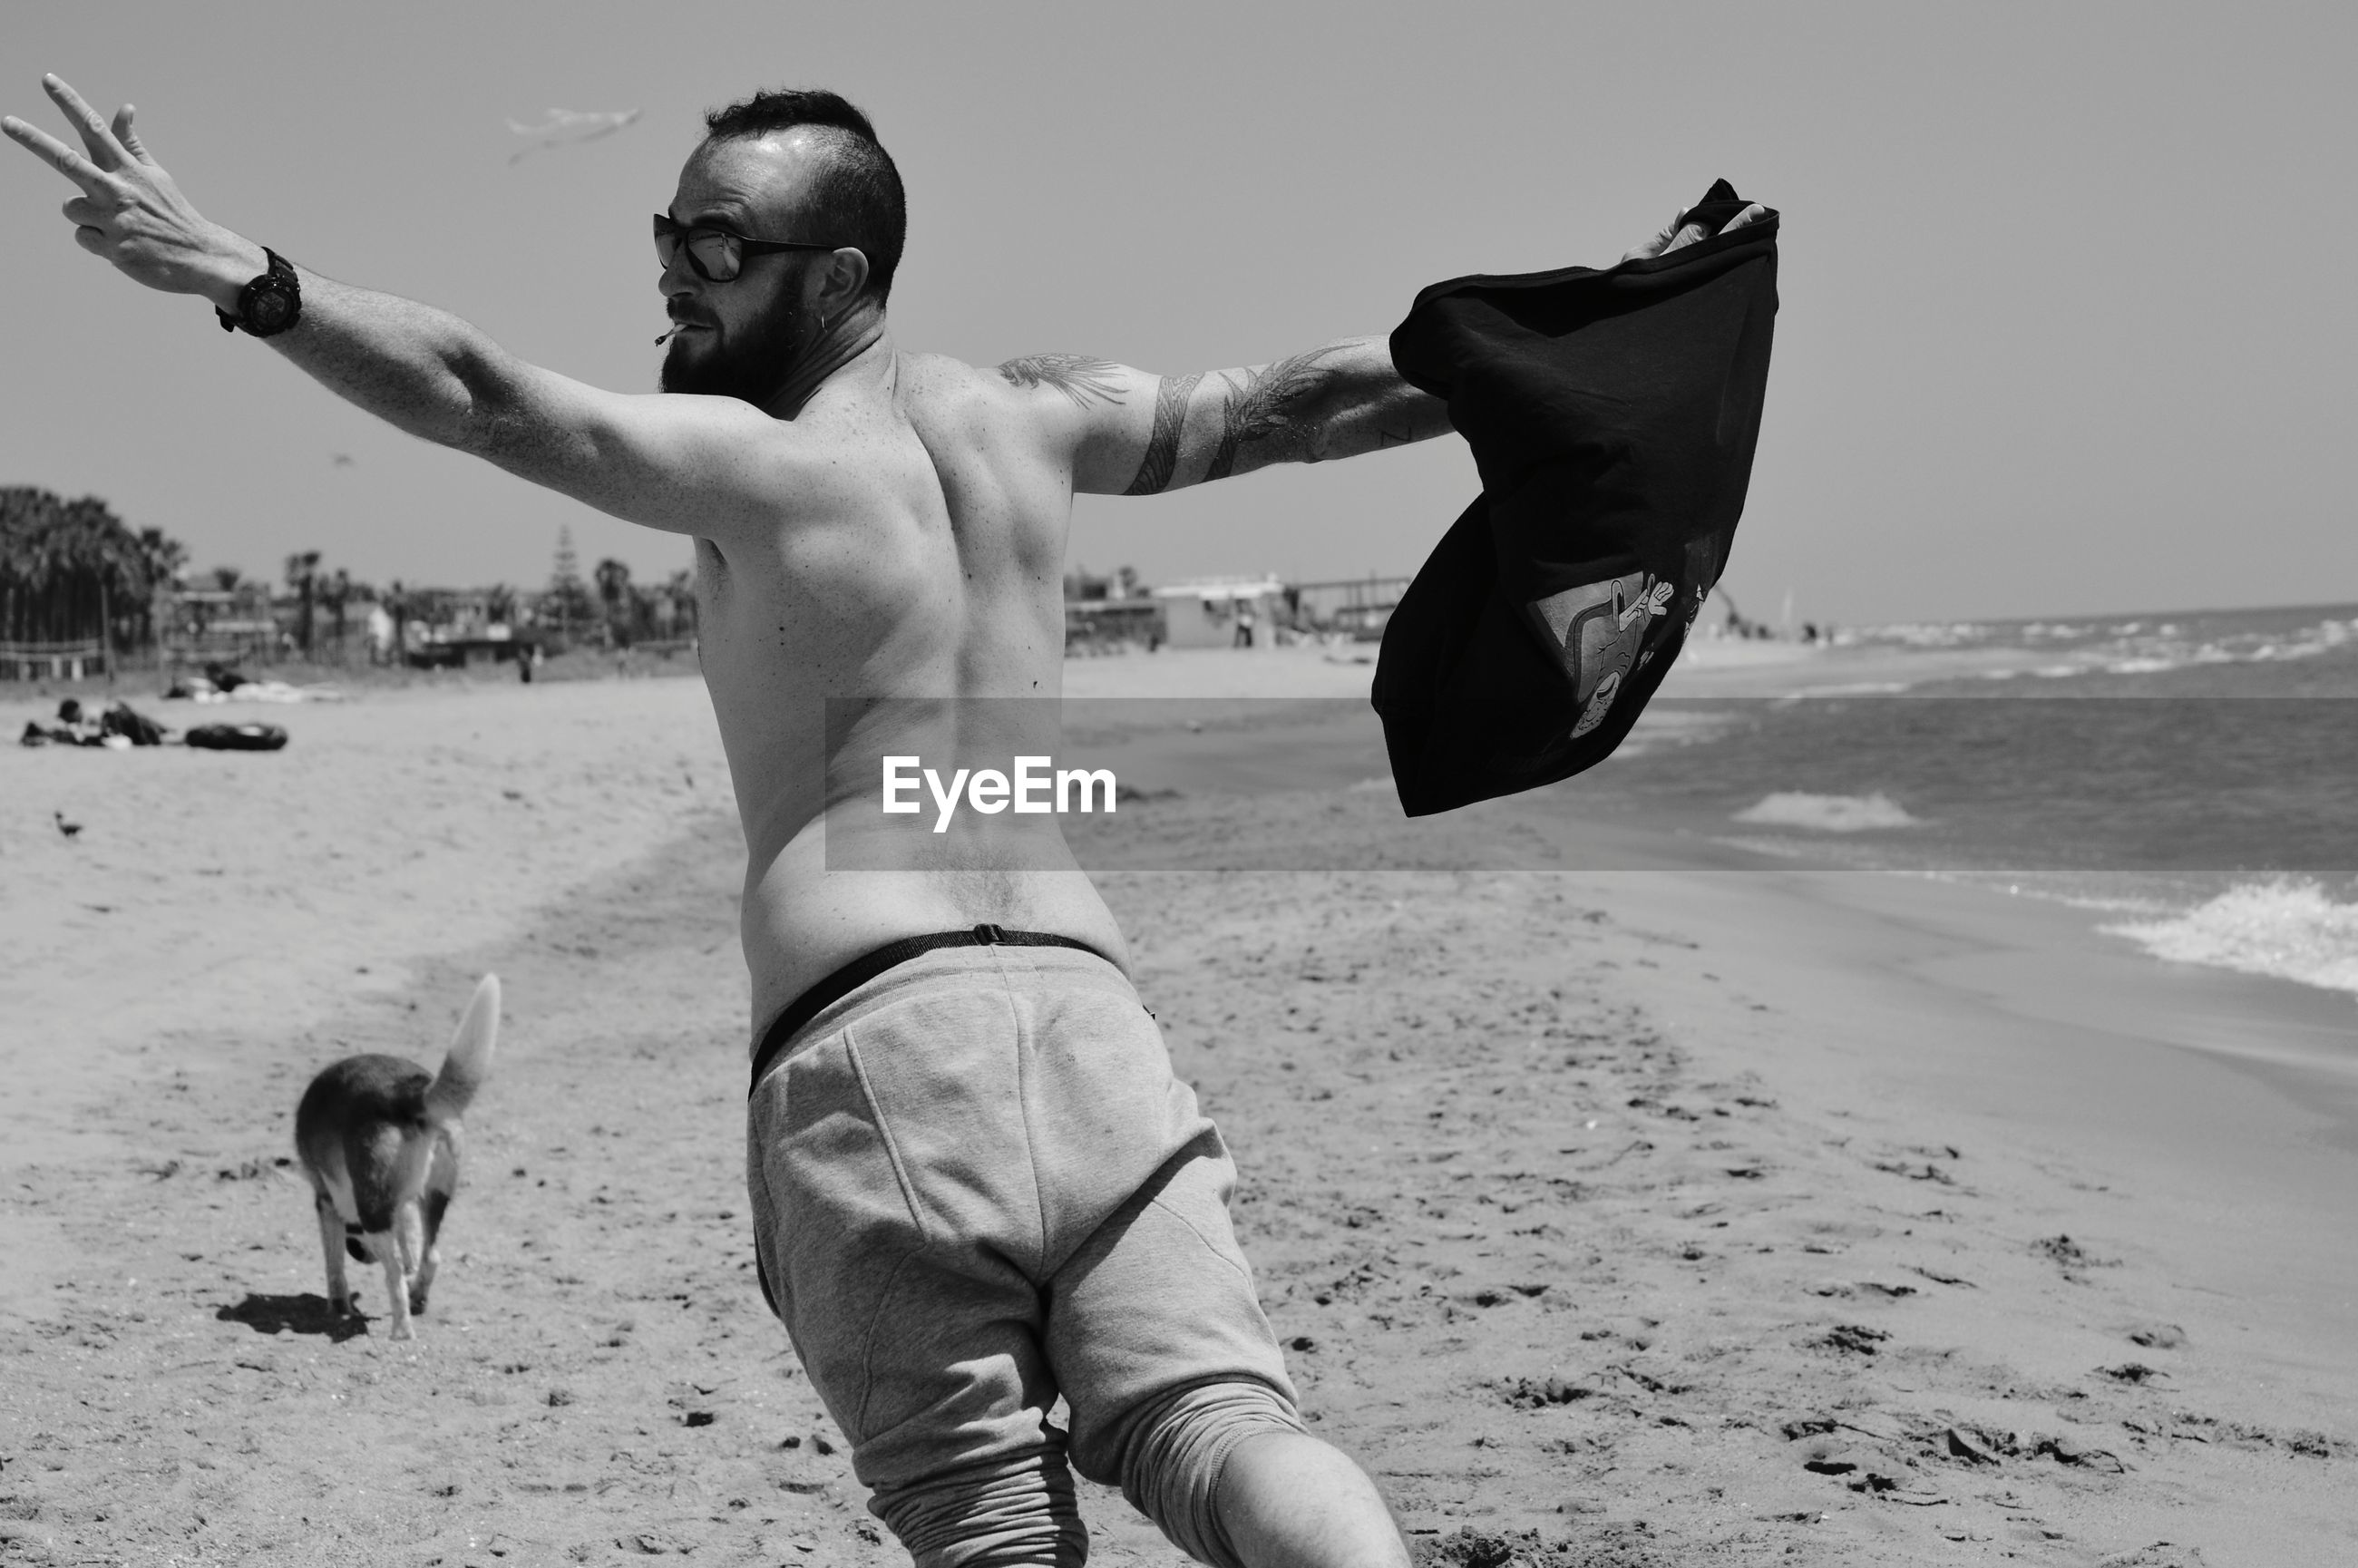 Rear view of shirtless man with arms outstretched standing on beach